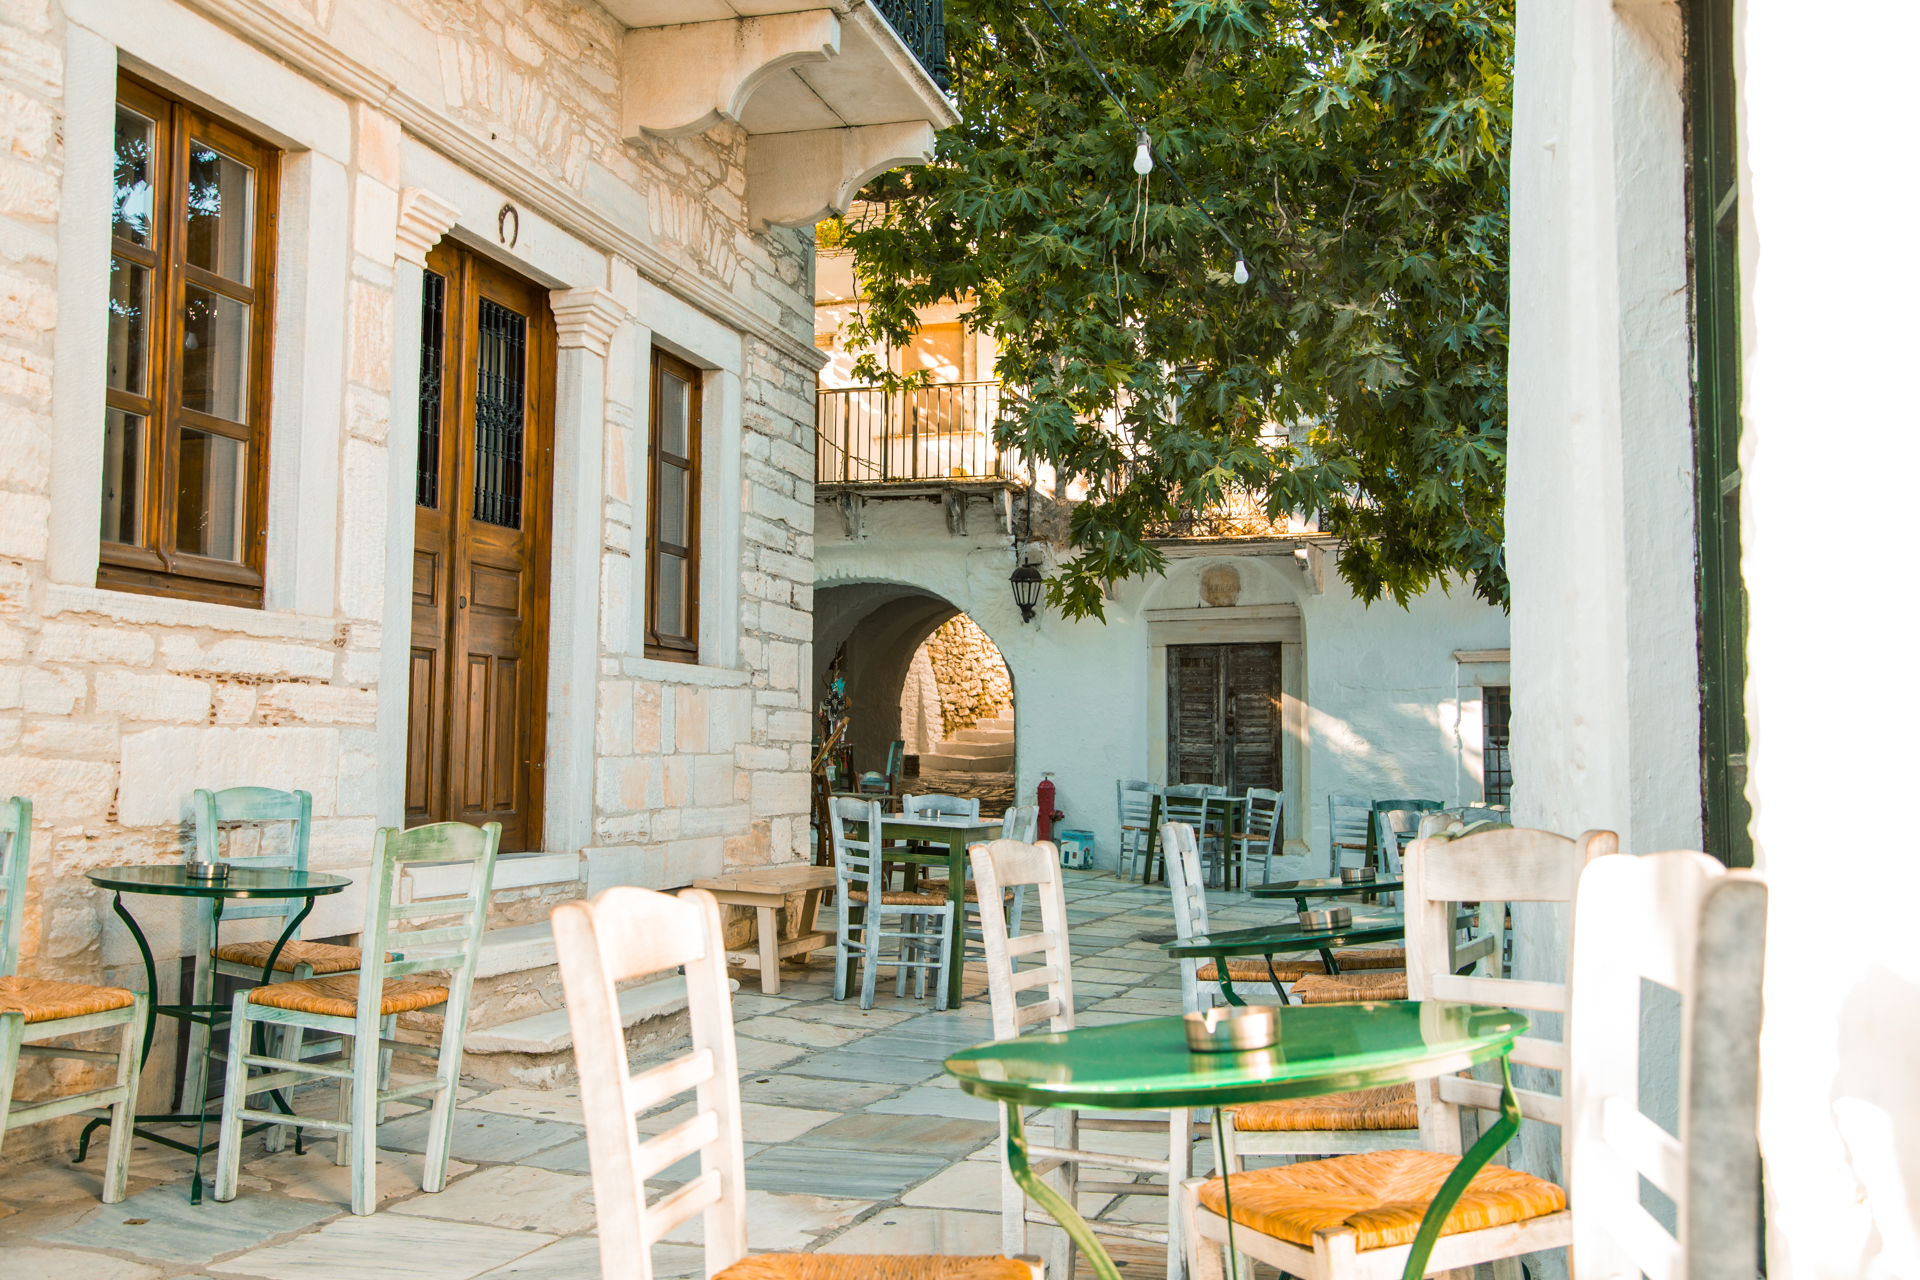 Apiranthos is a wonderful example of Venetian towers and arches, old stone houses and small squares